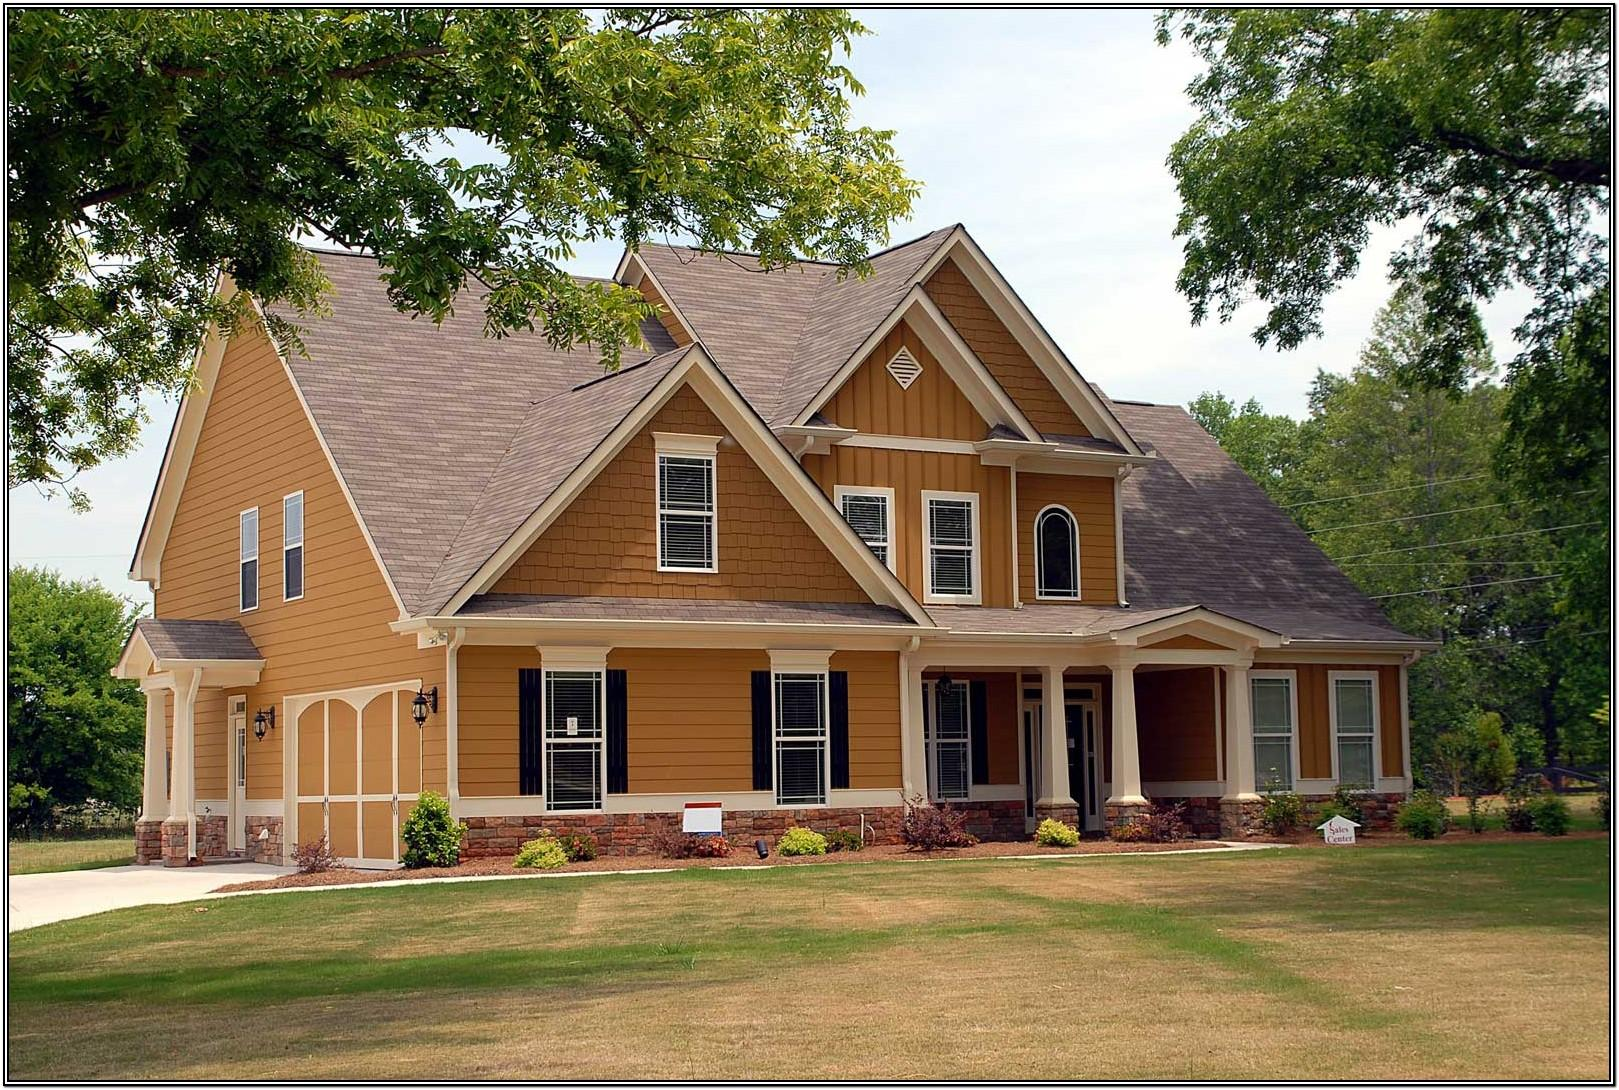 Traditional House Exterior Colors